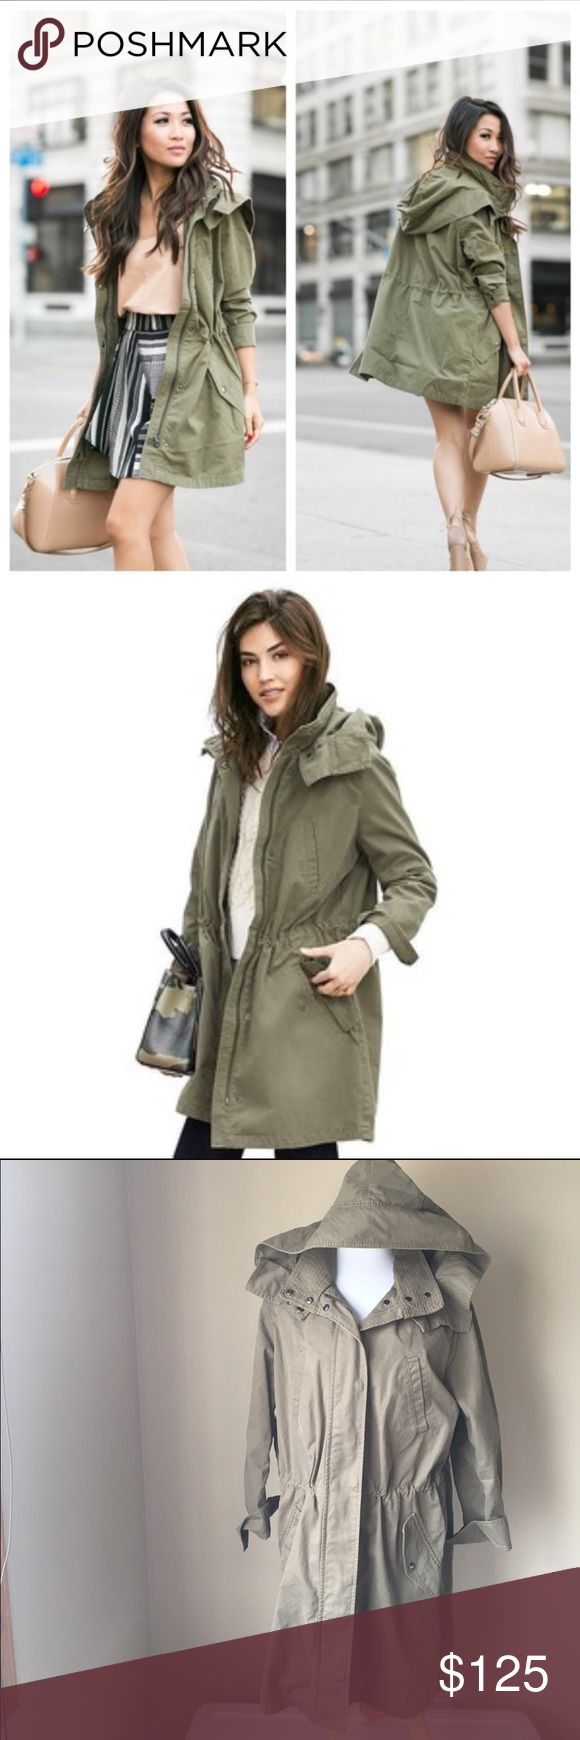 "Banana Republic Oversized Military Parka My pics make it look beige but it's the olive color that is shown in the first two pics 👍🏽 Right in step with the military trend, our parka boasts an oversize, relaxed silhouette. Standing collar with snap closure. Hooded. Long sleeves with snap cuffs. Full zip and snap closure. Front exterior pockets. Elasticized waist. Body length: 37"". Model is 6'. Banana Republic Jackets & Coats Utility Jackets"